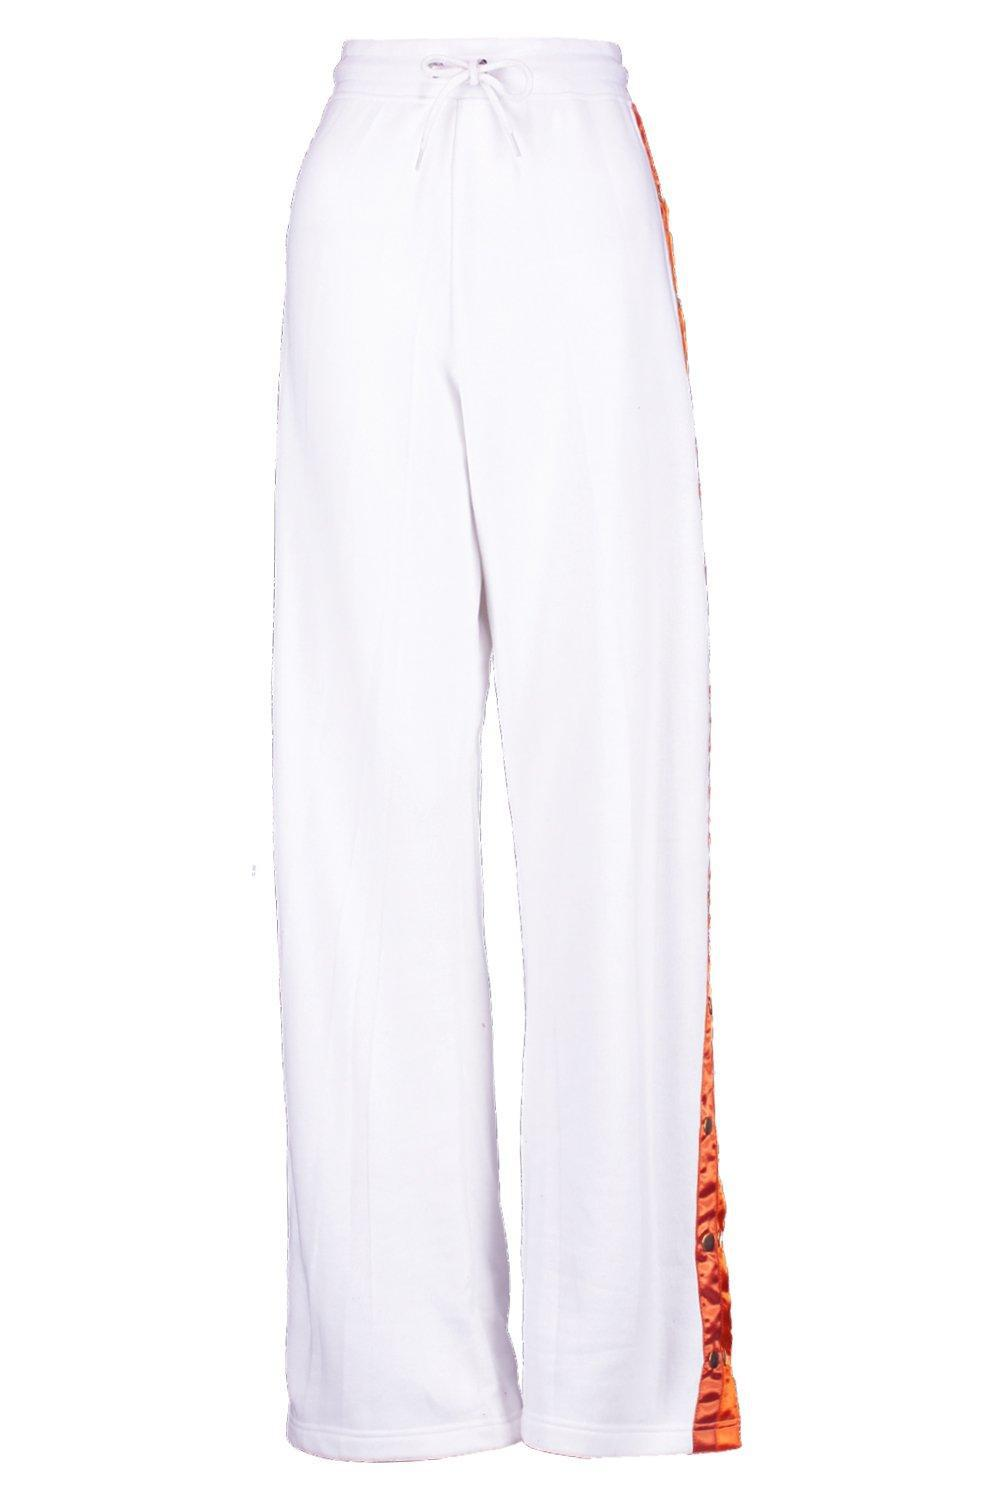 Boohoo Synthetic Double Popper Sweat Joggers in White